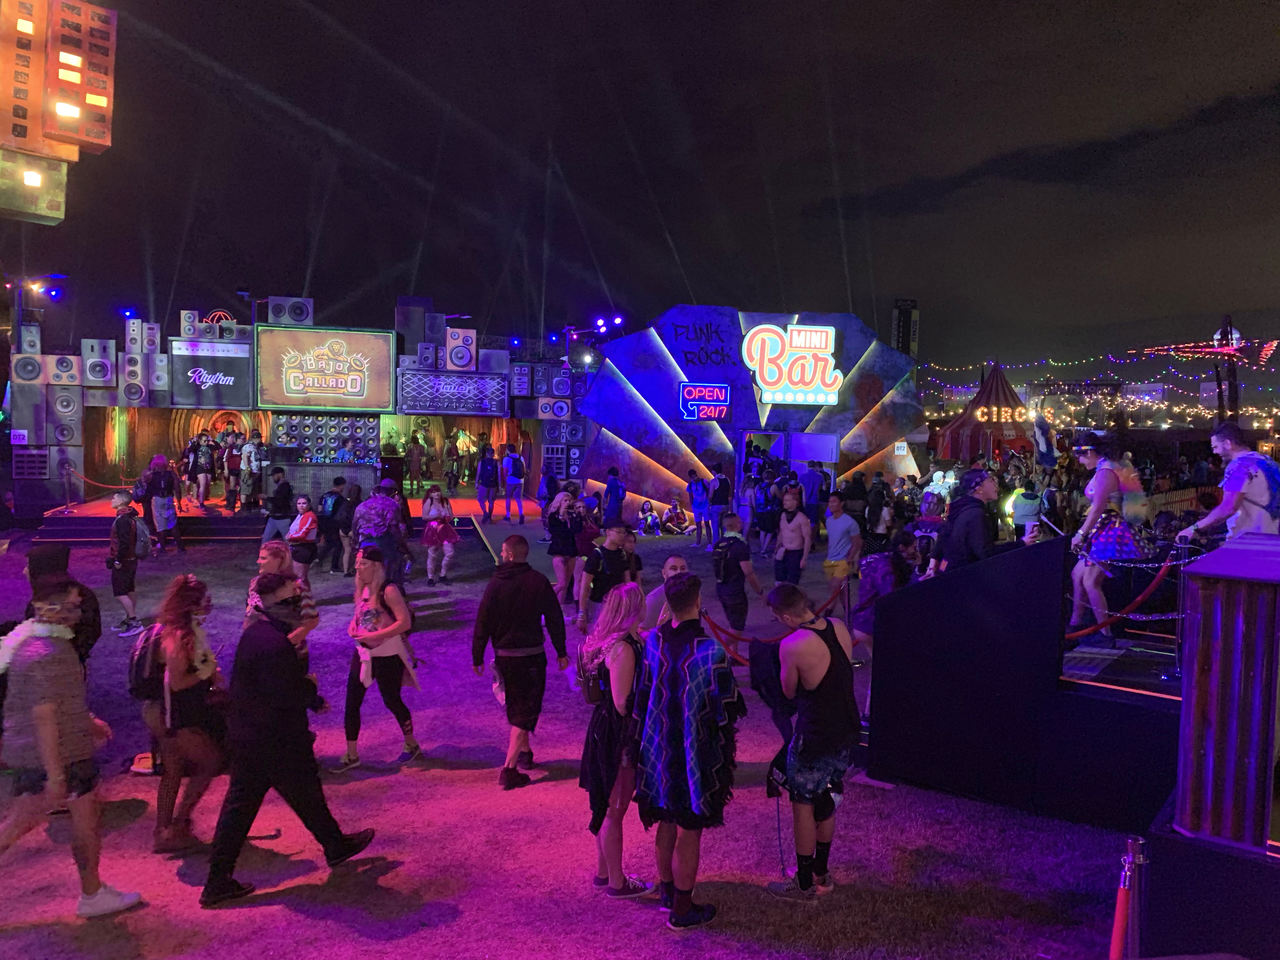 The main square at the entertainment area of EDC 2019